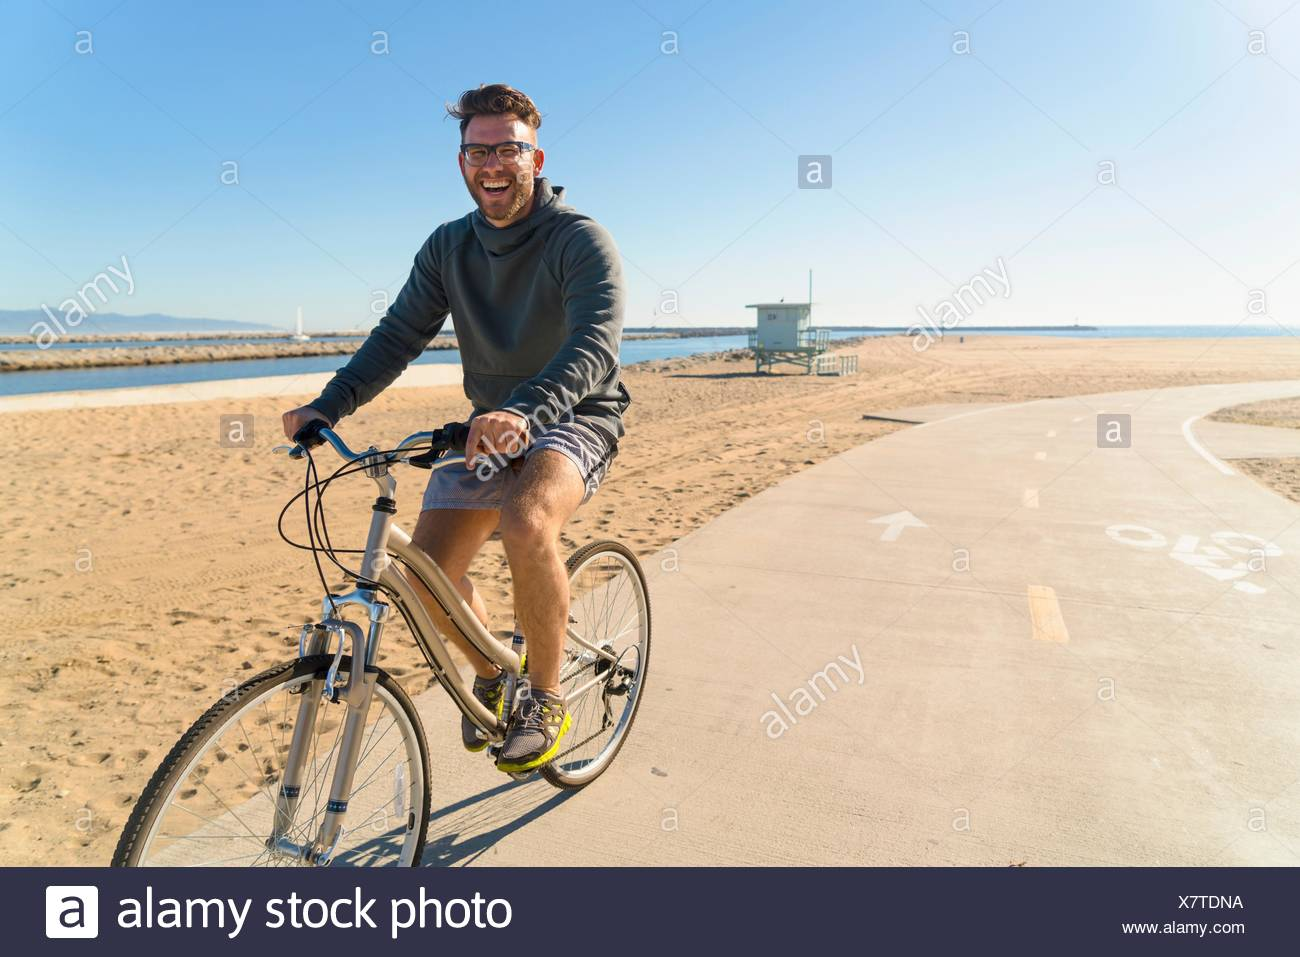 Young man cycling along pathway at beach - Stock Image